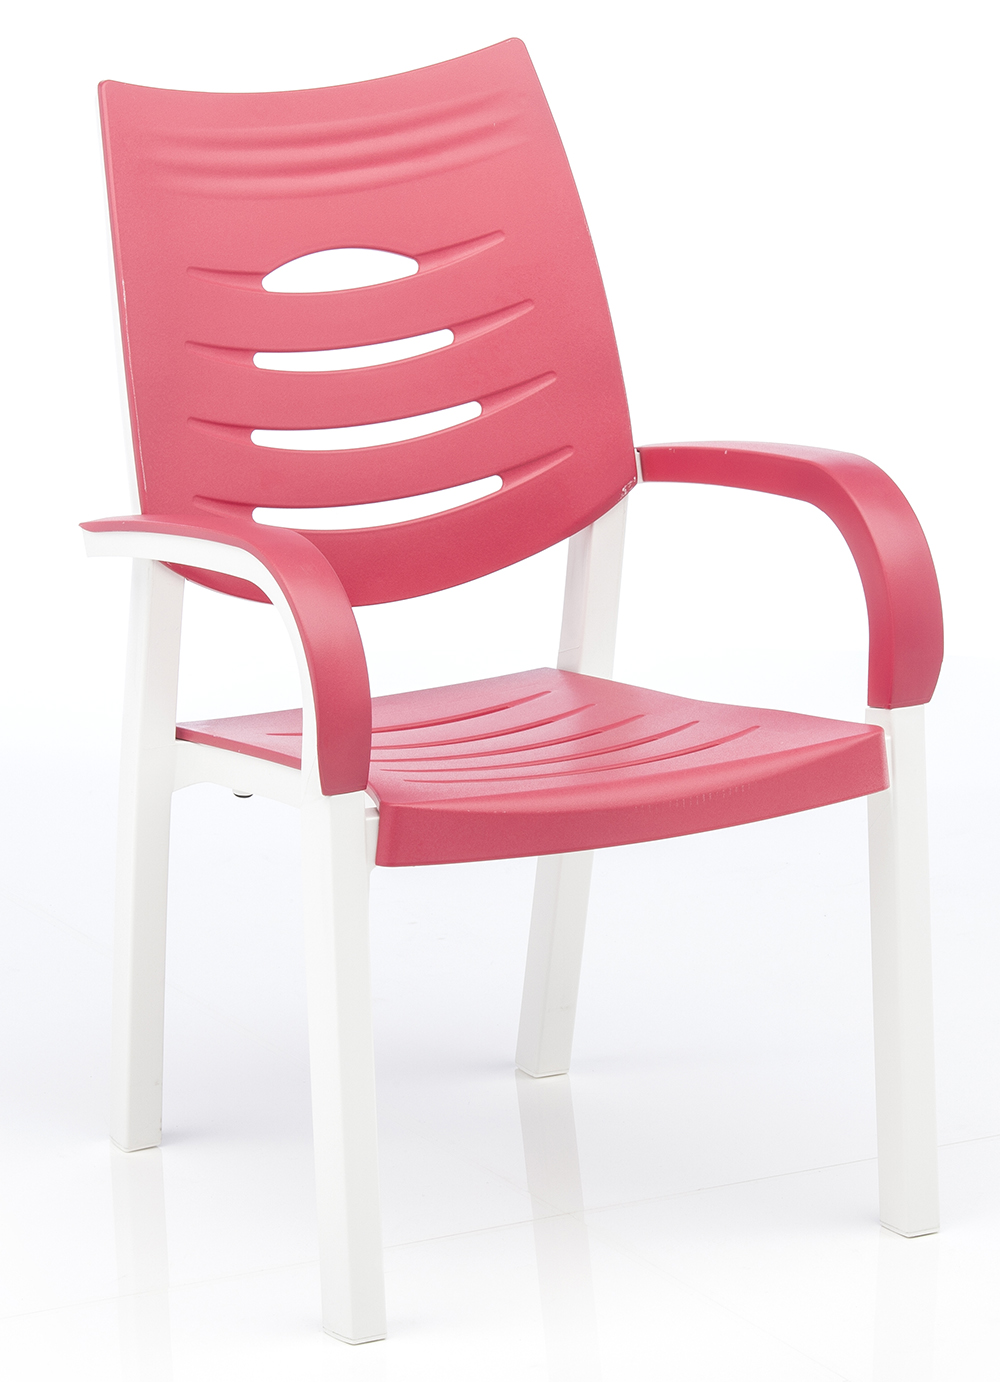 HAPPY CHAIR-CORAL 310202-5400